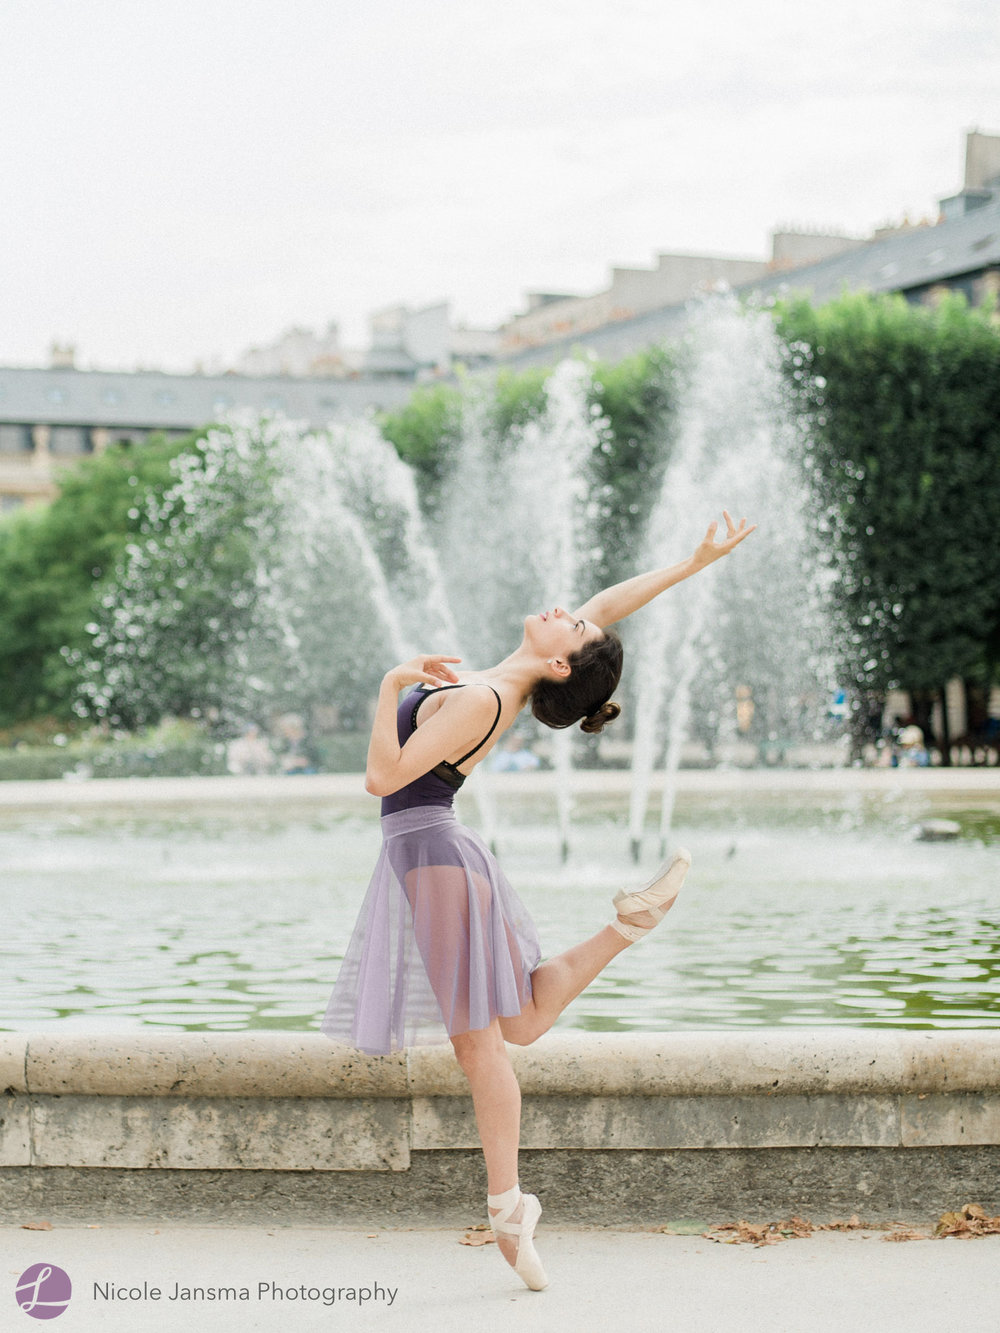 - @CLARADOLORESClara is a professional French ballet dancer. The last few years have been quite challenging for her as she had 2 surgerieson her left knee due to a bad landing during her dance practice. She is still working on returning to the same level of dance she was at before getting injured.